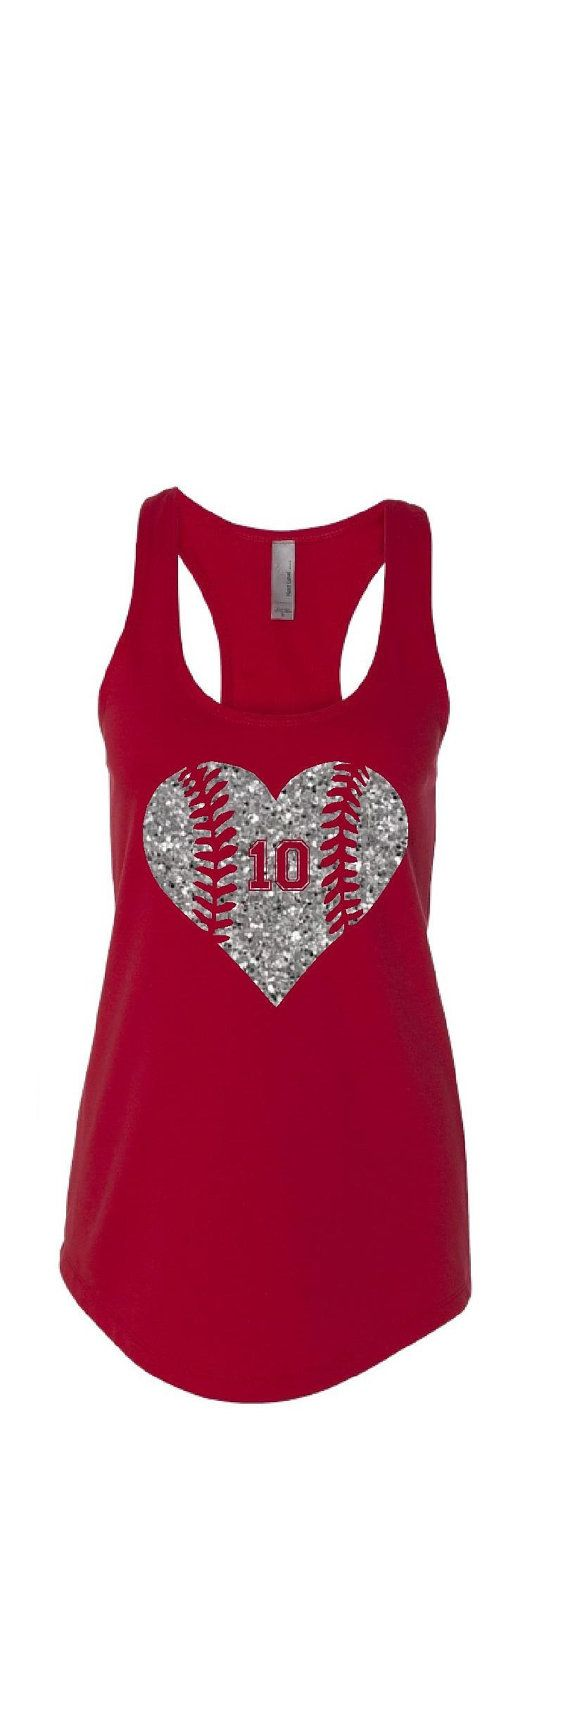 Hey, I found this really awesome Etsy listing at https://www.etsy.com/listing/226994146/baseball-mom-tank-top-glitter-baseball